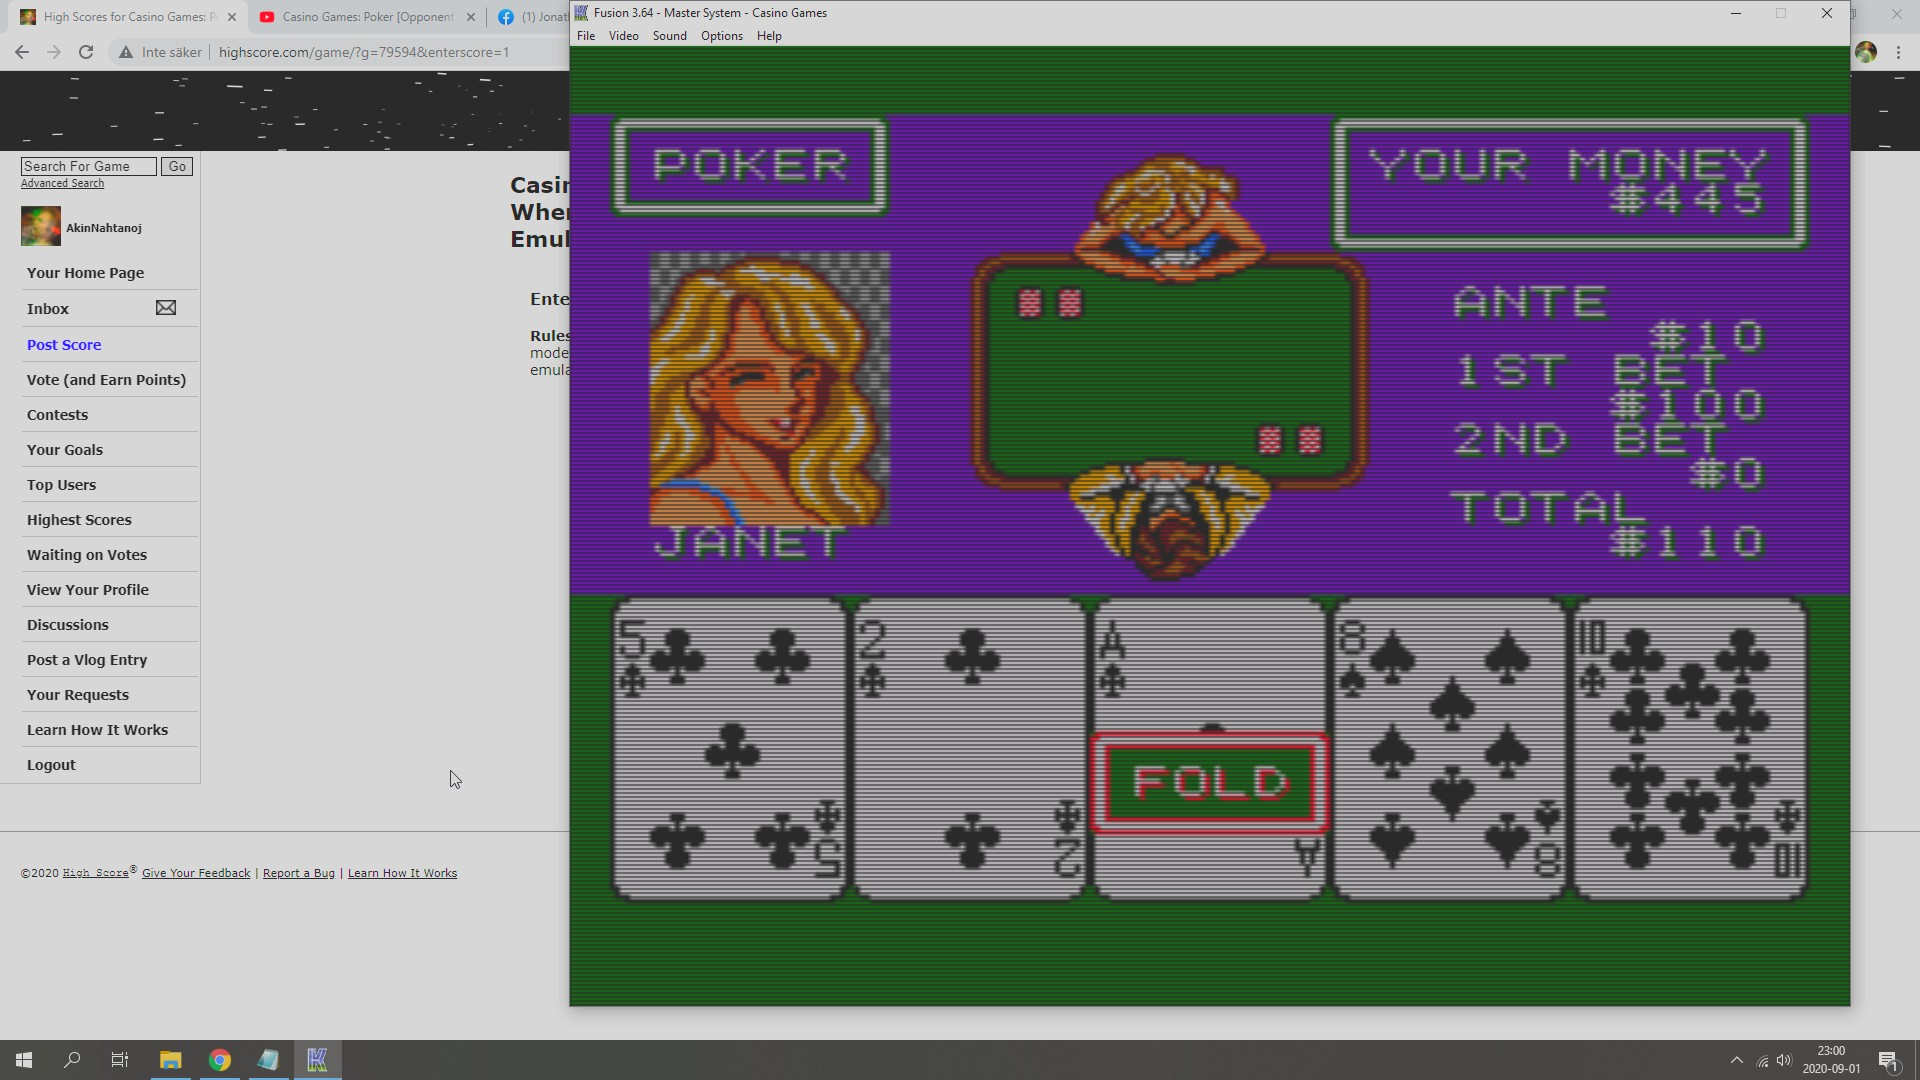 Casino Games: Poker [Opponent Janet] [Dollars Whenever You Stop Playing] 445 points